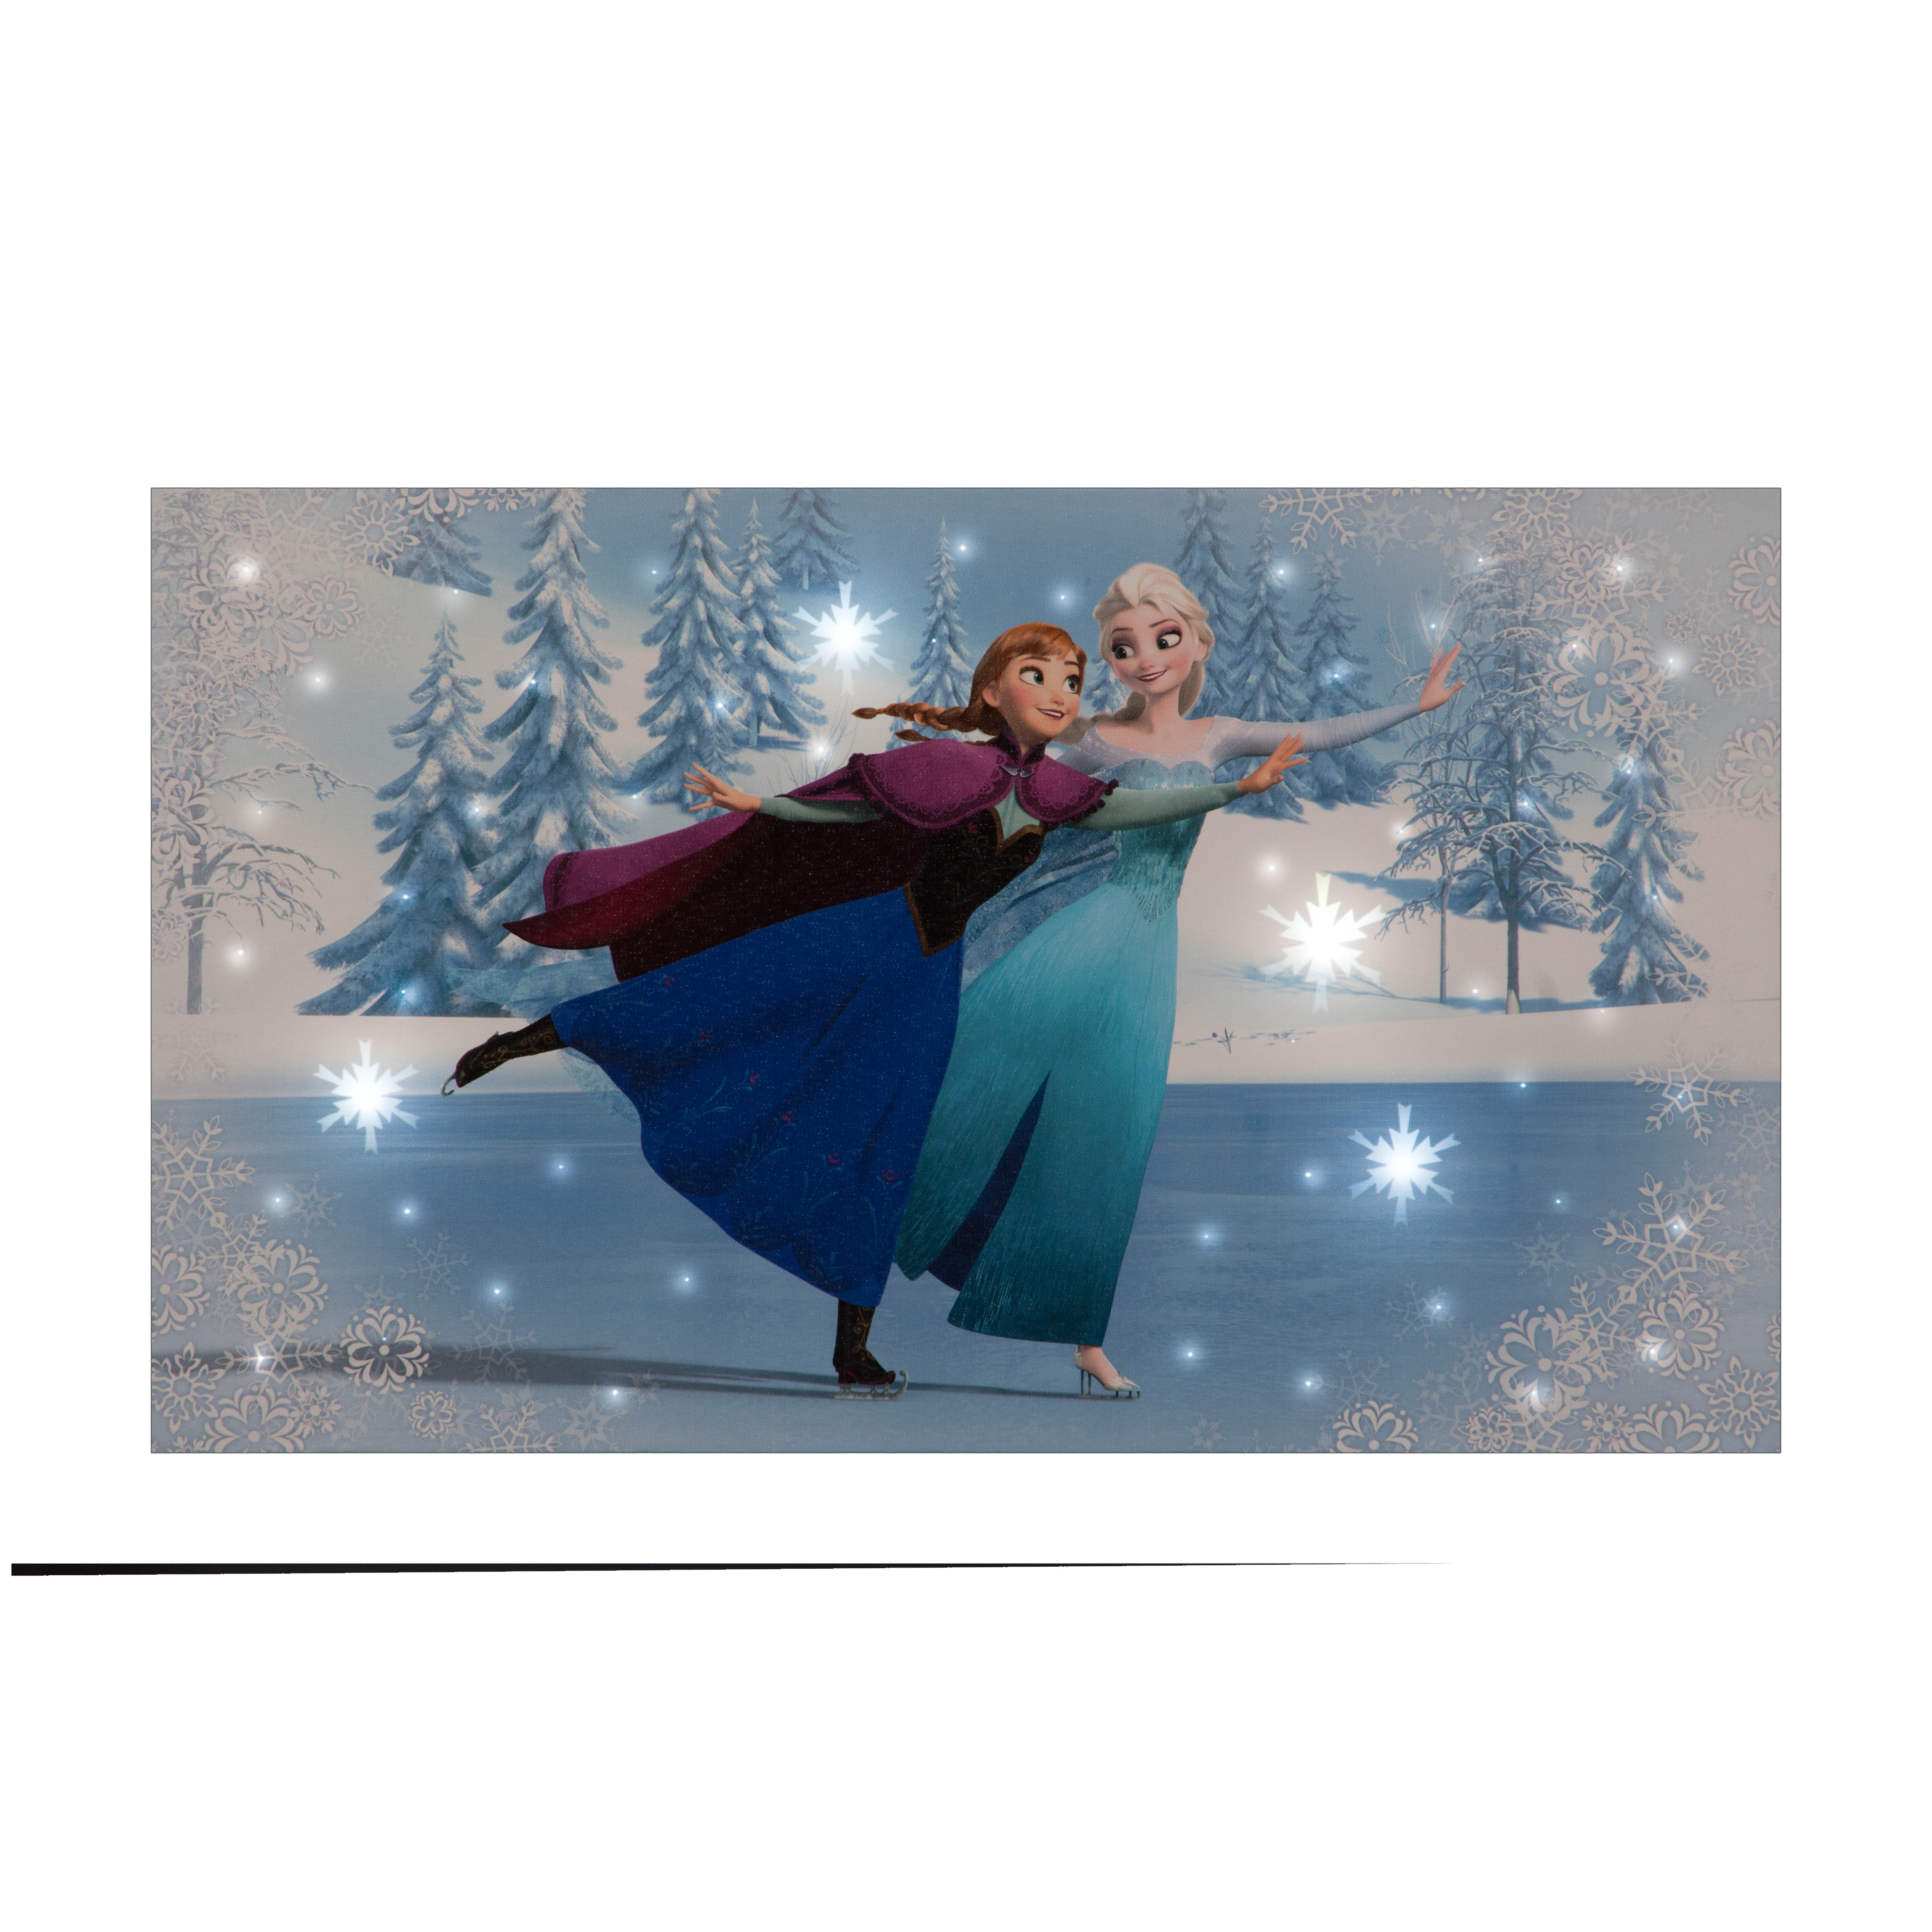 Elsa & Anna Skating Disney Frozen Canvas